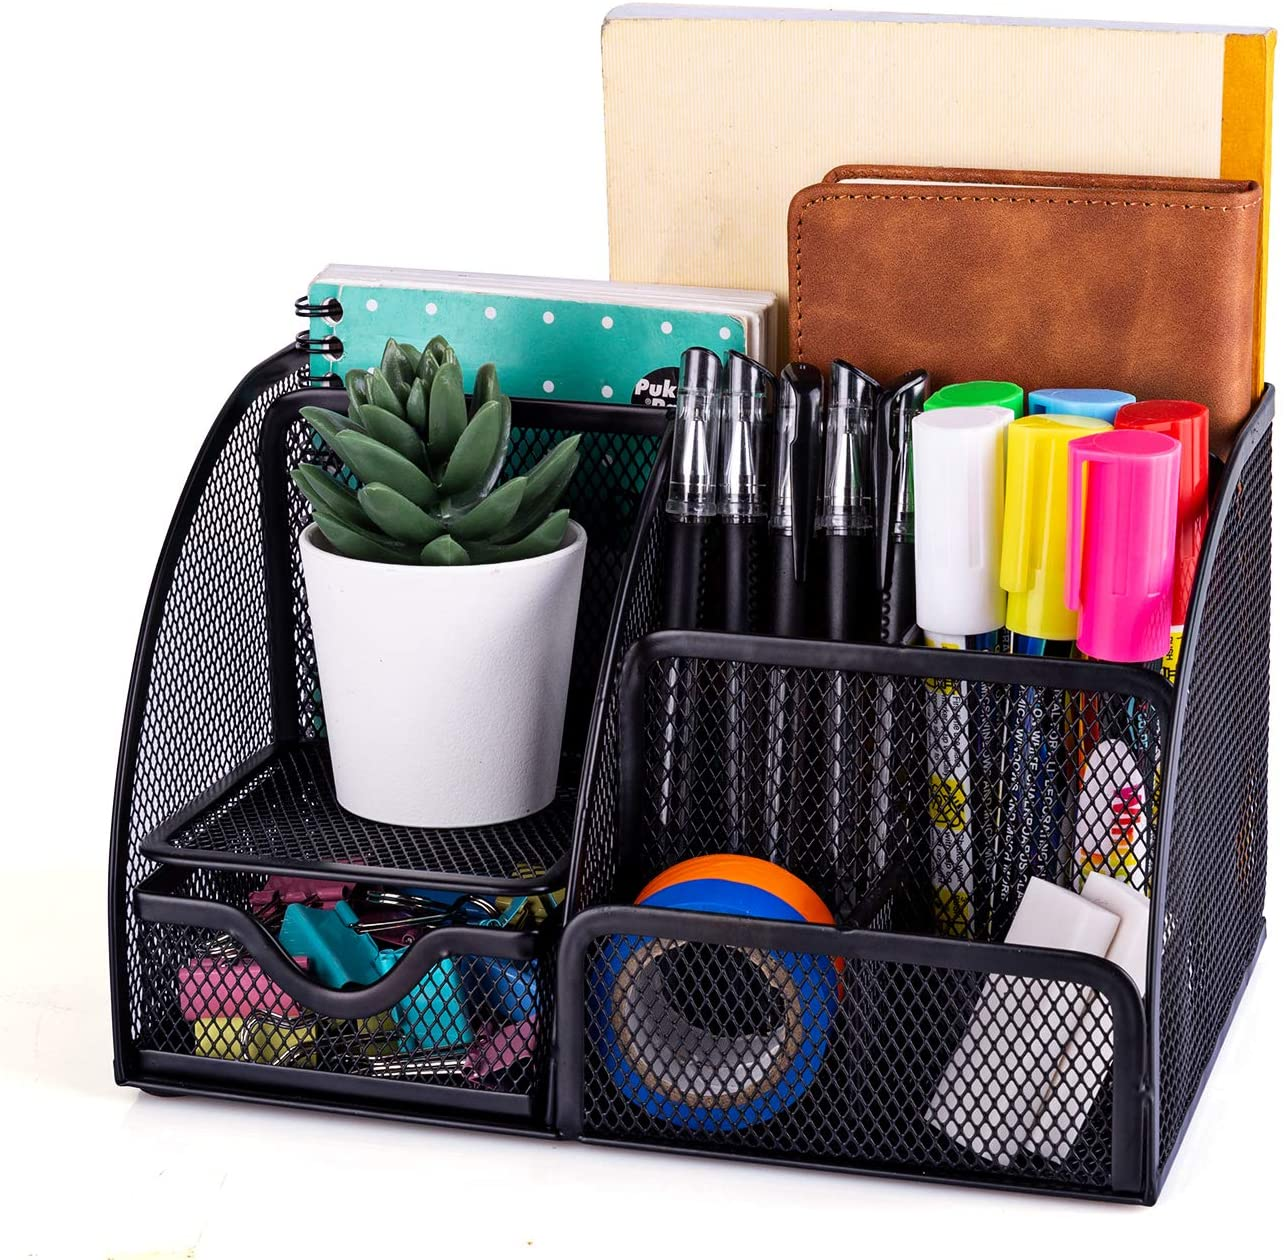 Amazon Com Mdhand Office Desk Organizer And Accessories Mesh Desk Organizer With 6 Compartments Drawer Home Improvement